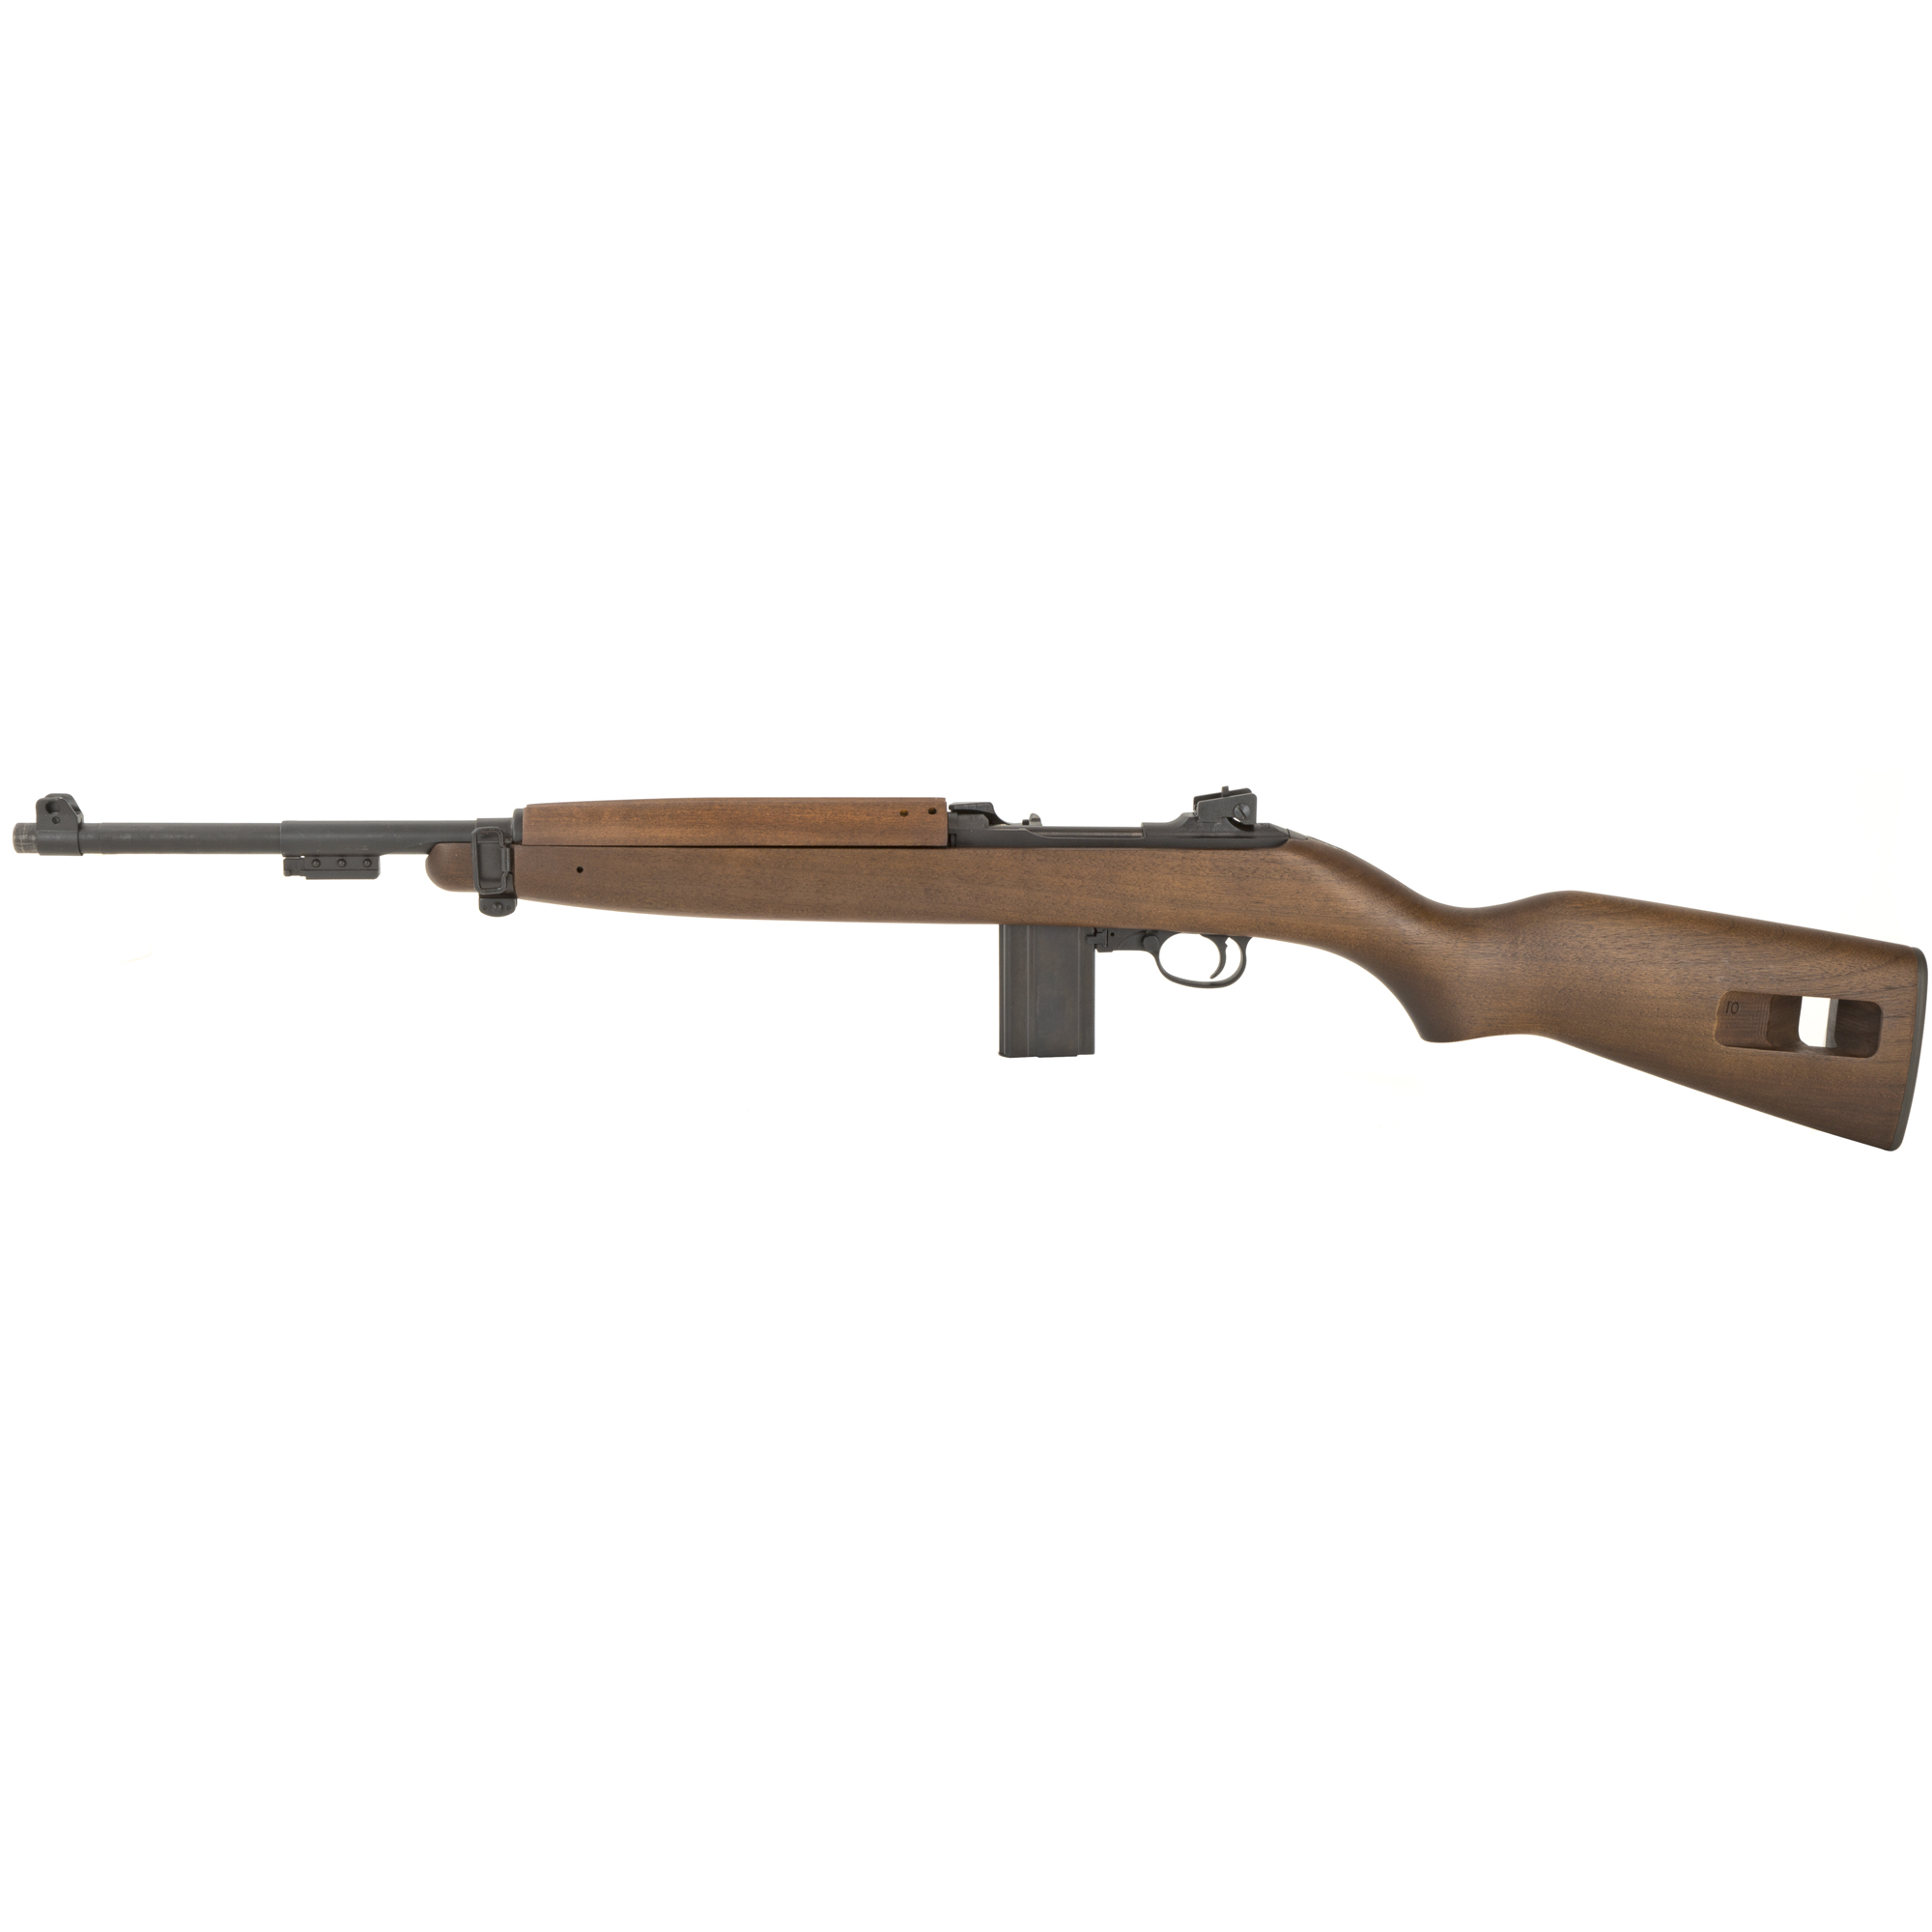 "The M1 carbine is modeled after the last production model that Inland manufactured in 1945 and features a type 3 bayonet lug / barrel band"" adjustable rear sight"" push button safety"" round bolt"" ""low wood"" walnut stock"" and a 15-round magazine."